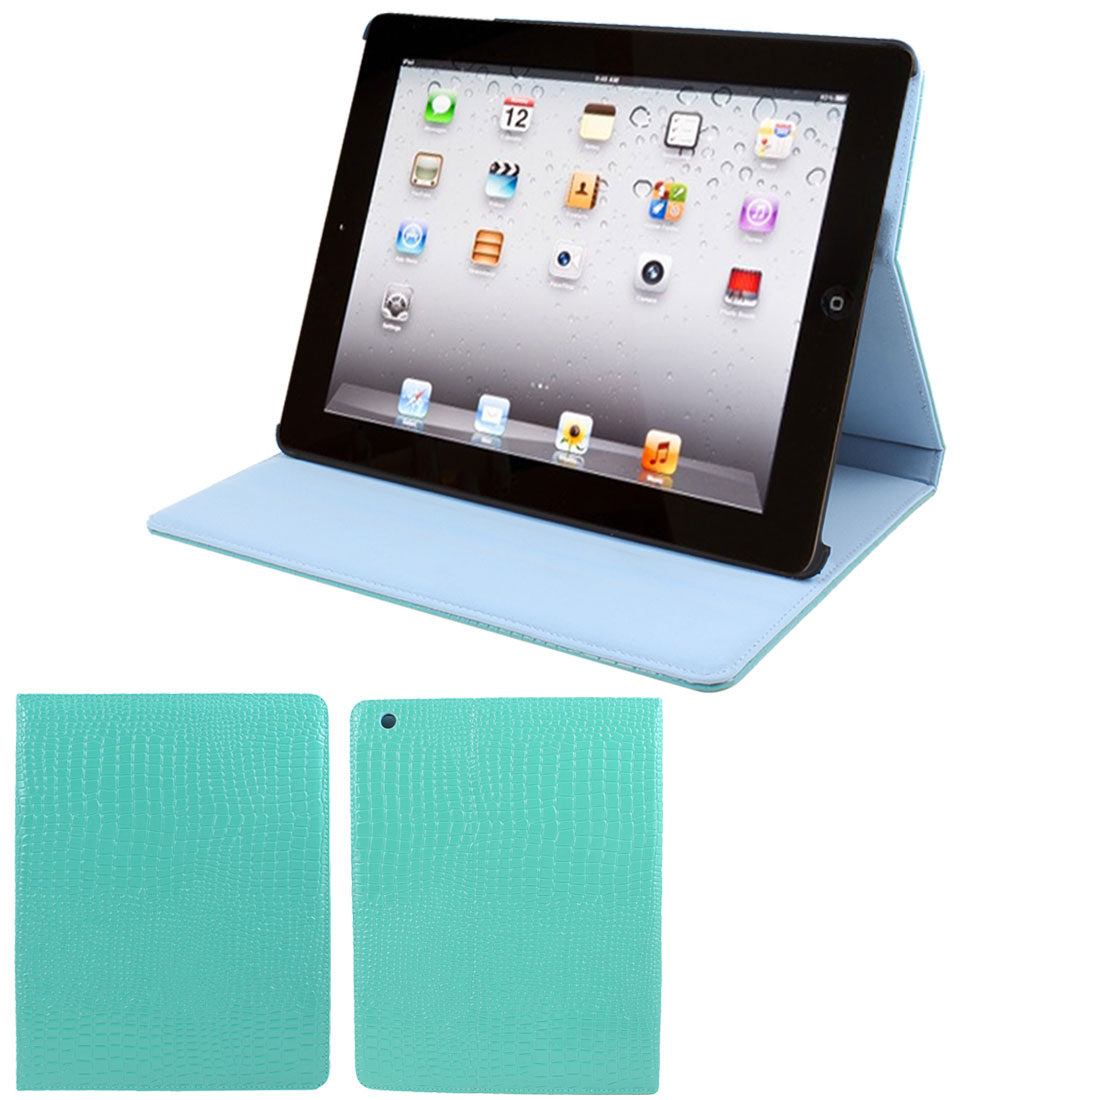 "Aqua Crocodile Pattern Faux Leather Folio Stand Case Cover for 9.7"" iPad 2 3 4"